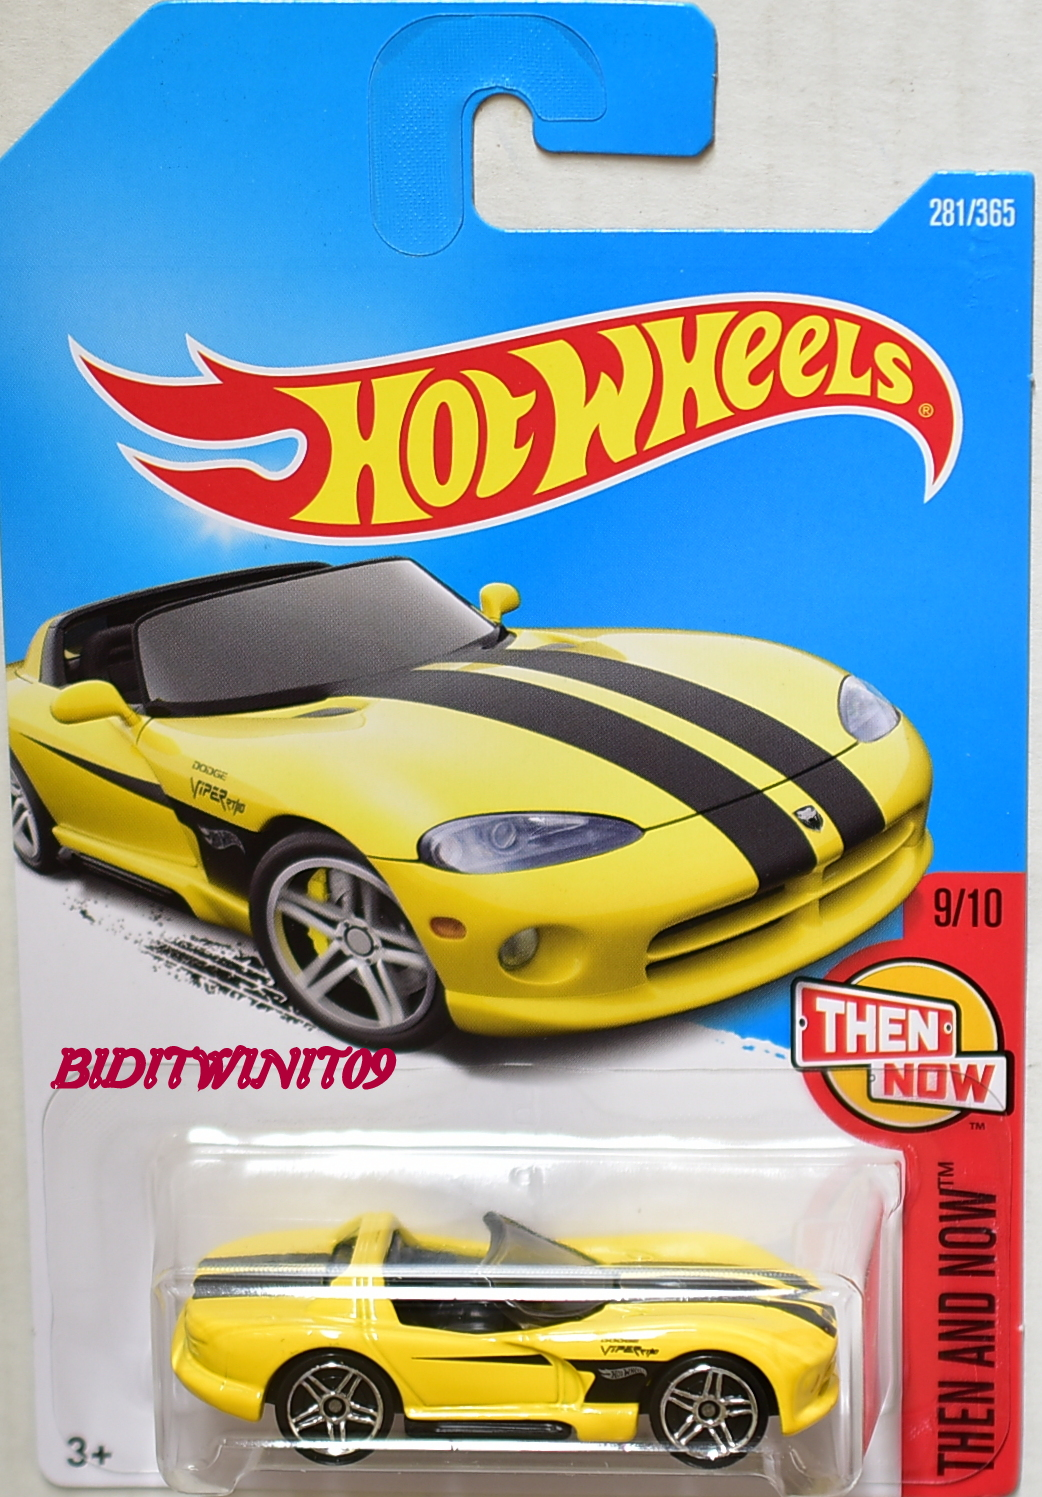 HOT WHEELS 2017 THEN AND NOW DODGE VIPER RT/10 #9/10 YELLOW